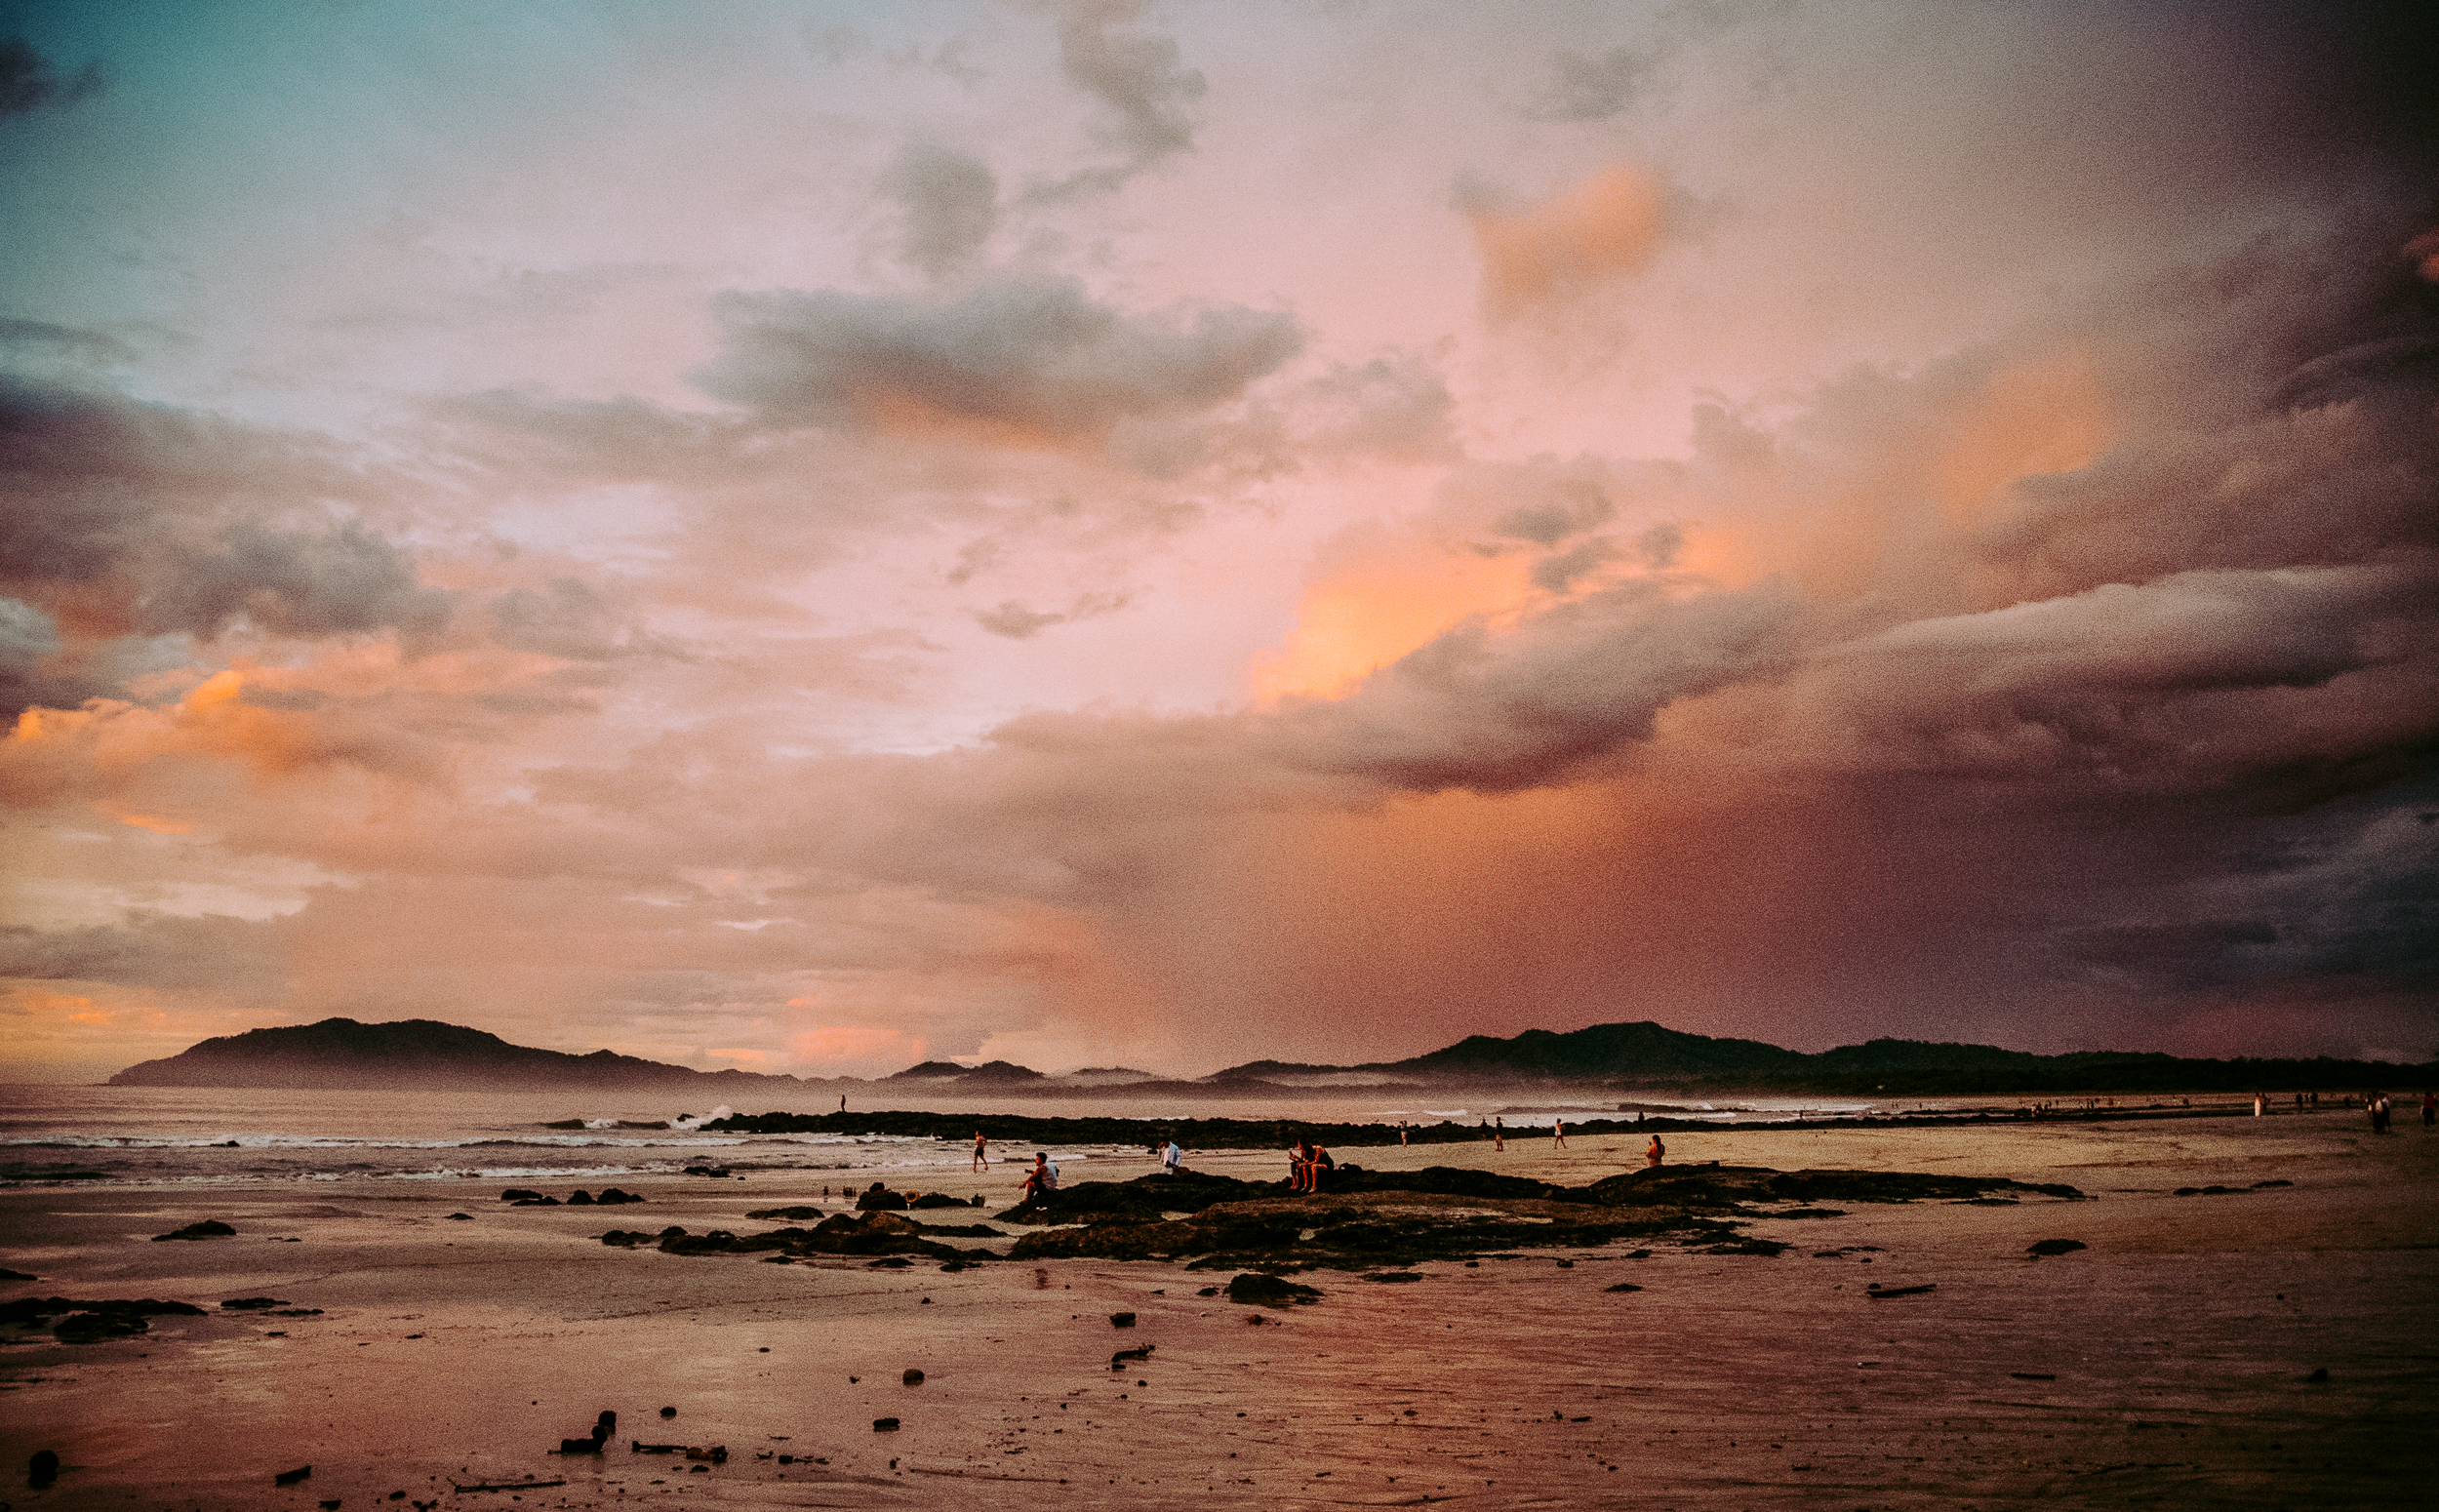 Sunsets in Tamarindo were some of the best I've seen. With the sea mist and colours, it almost appeared to be another planet.